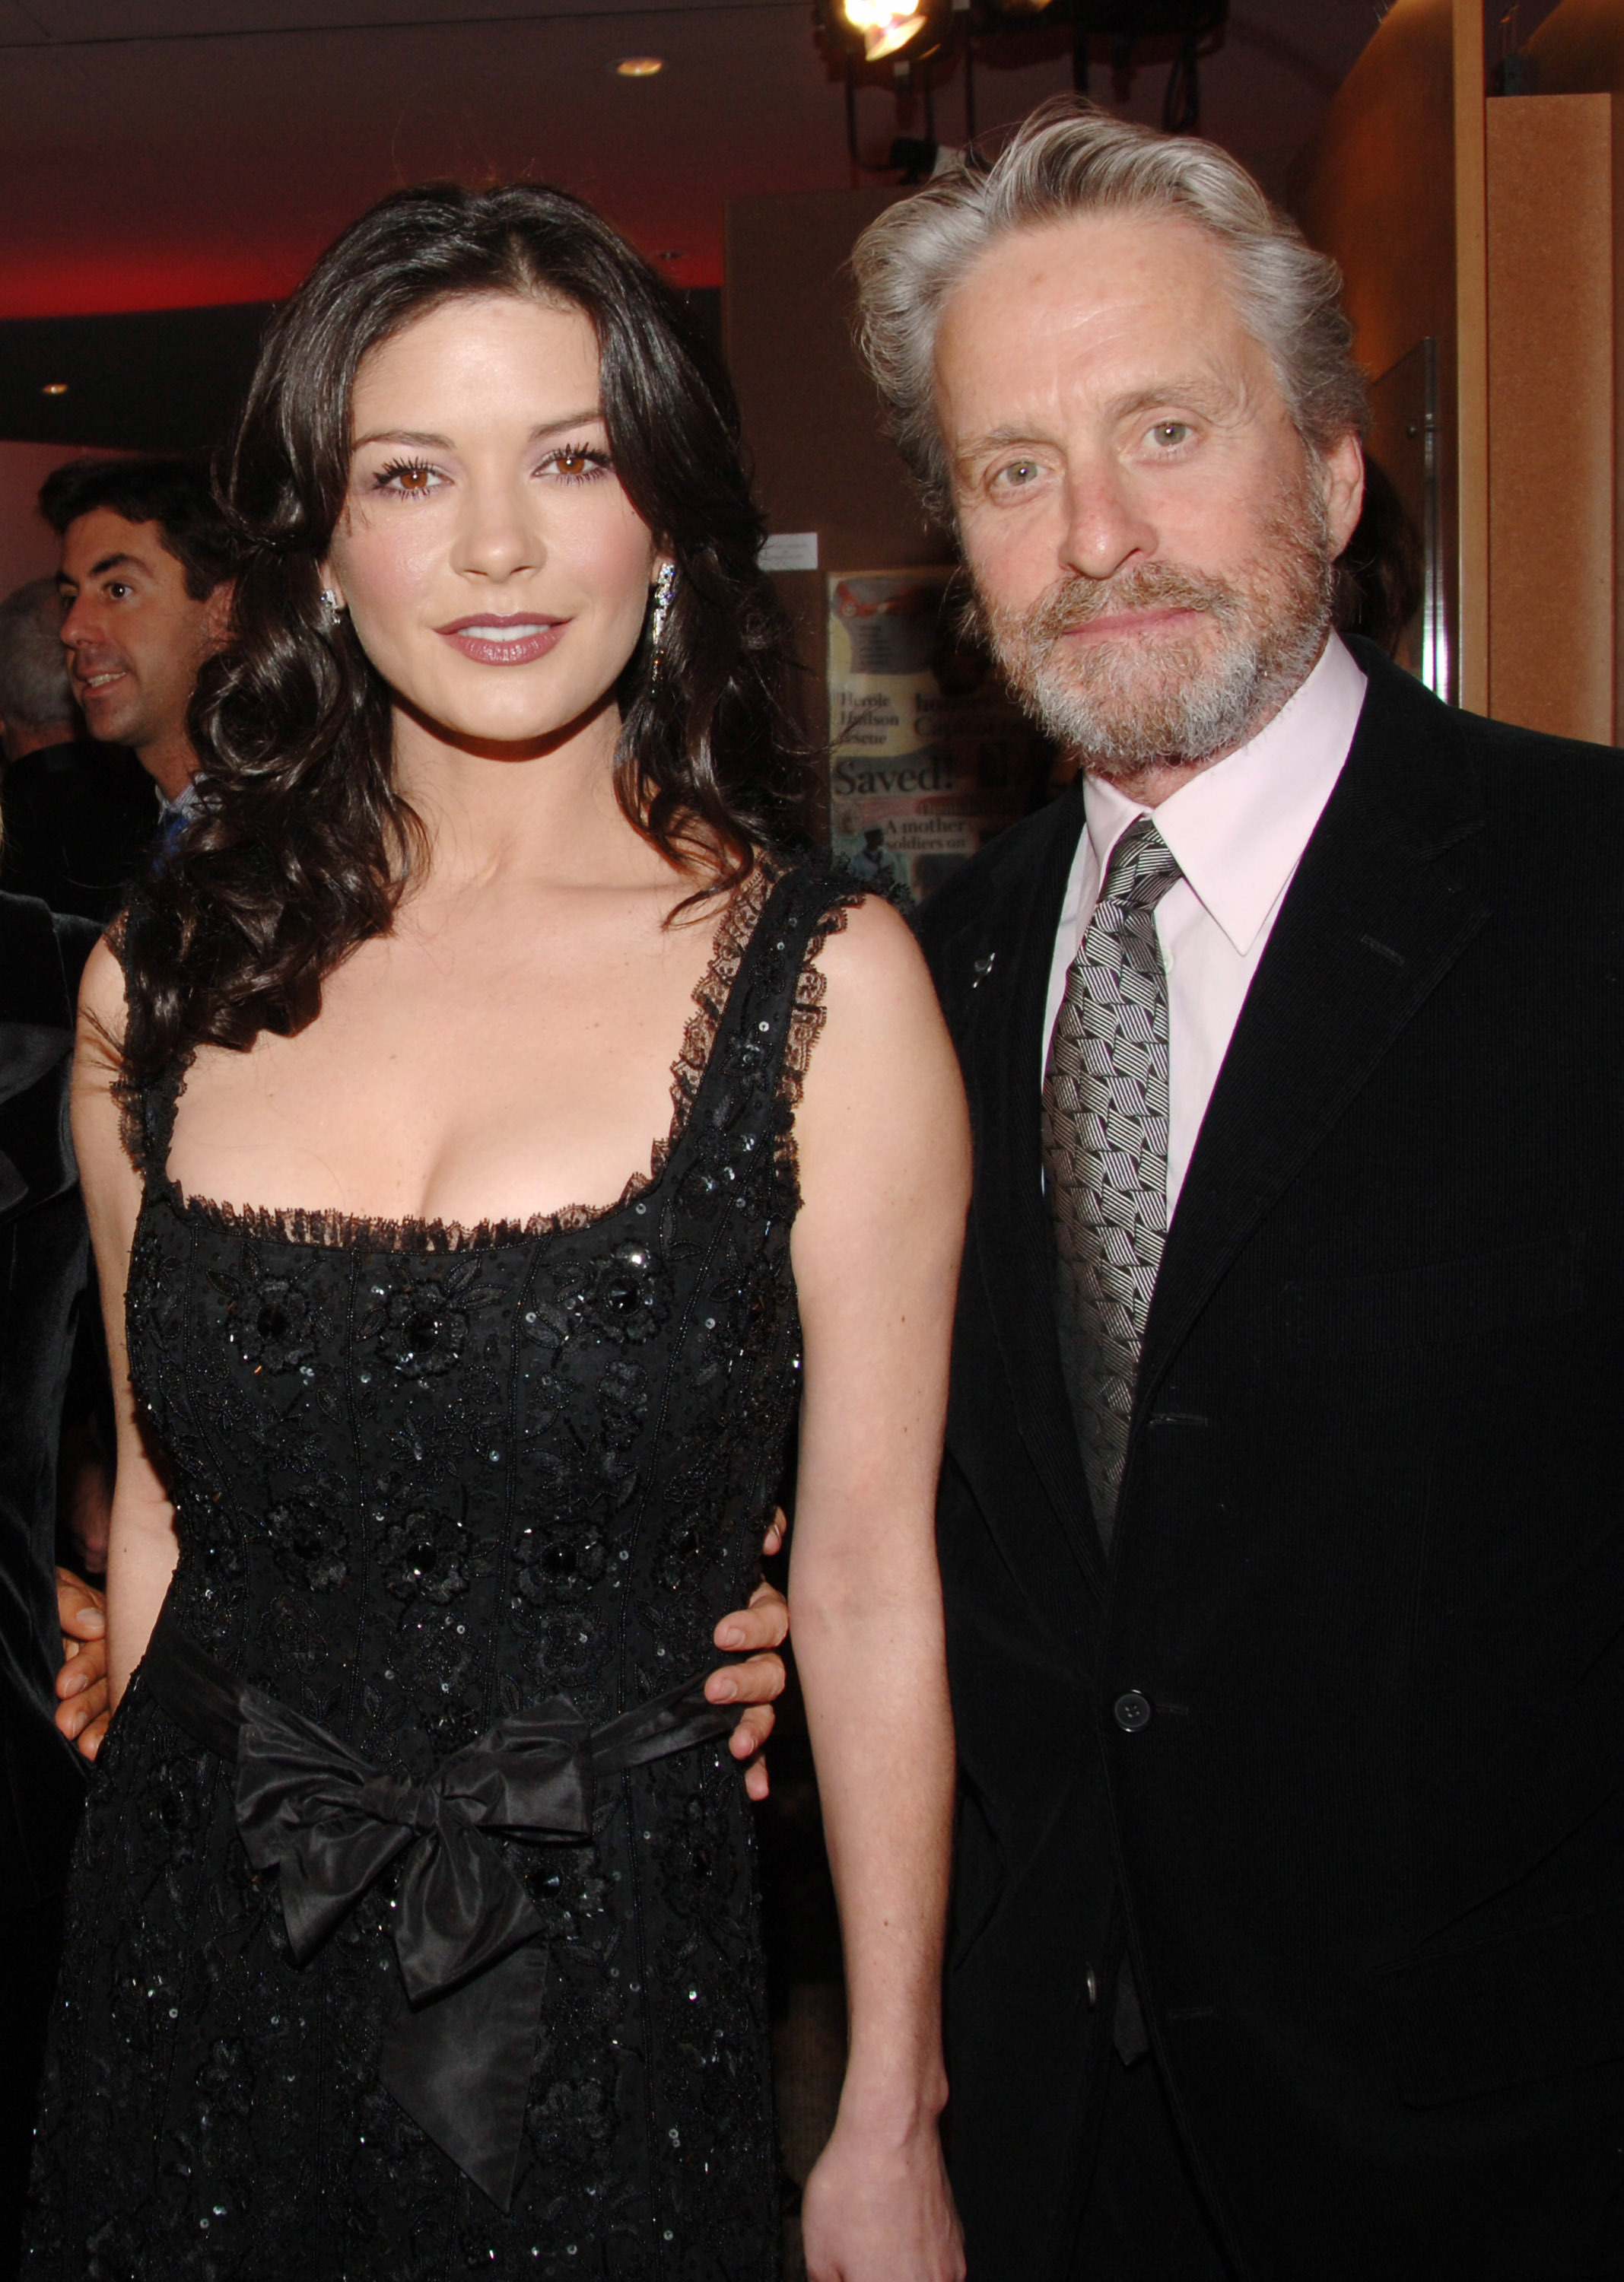 Catherine Zeta Jones and Michael Douglas red carpet